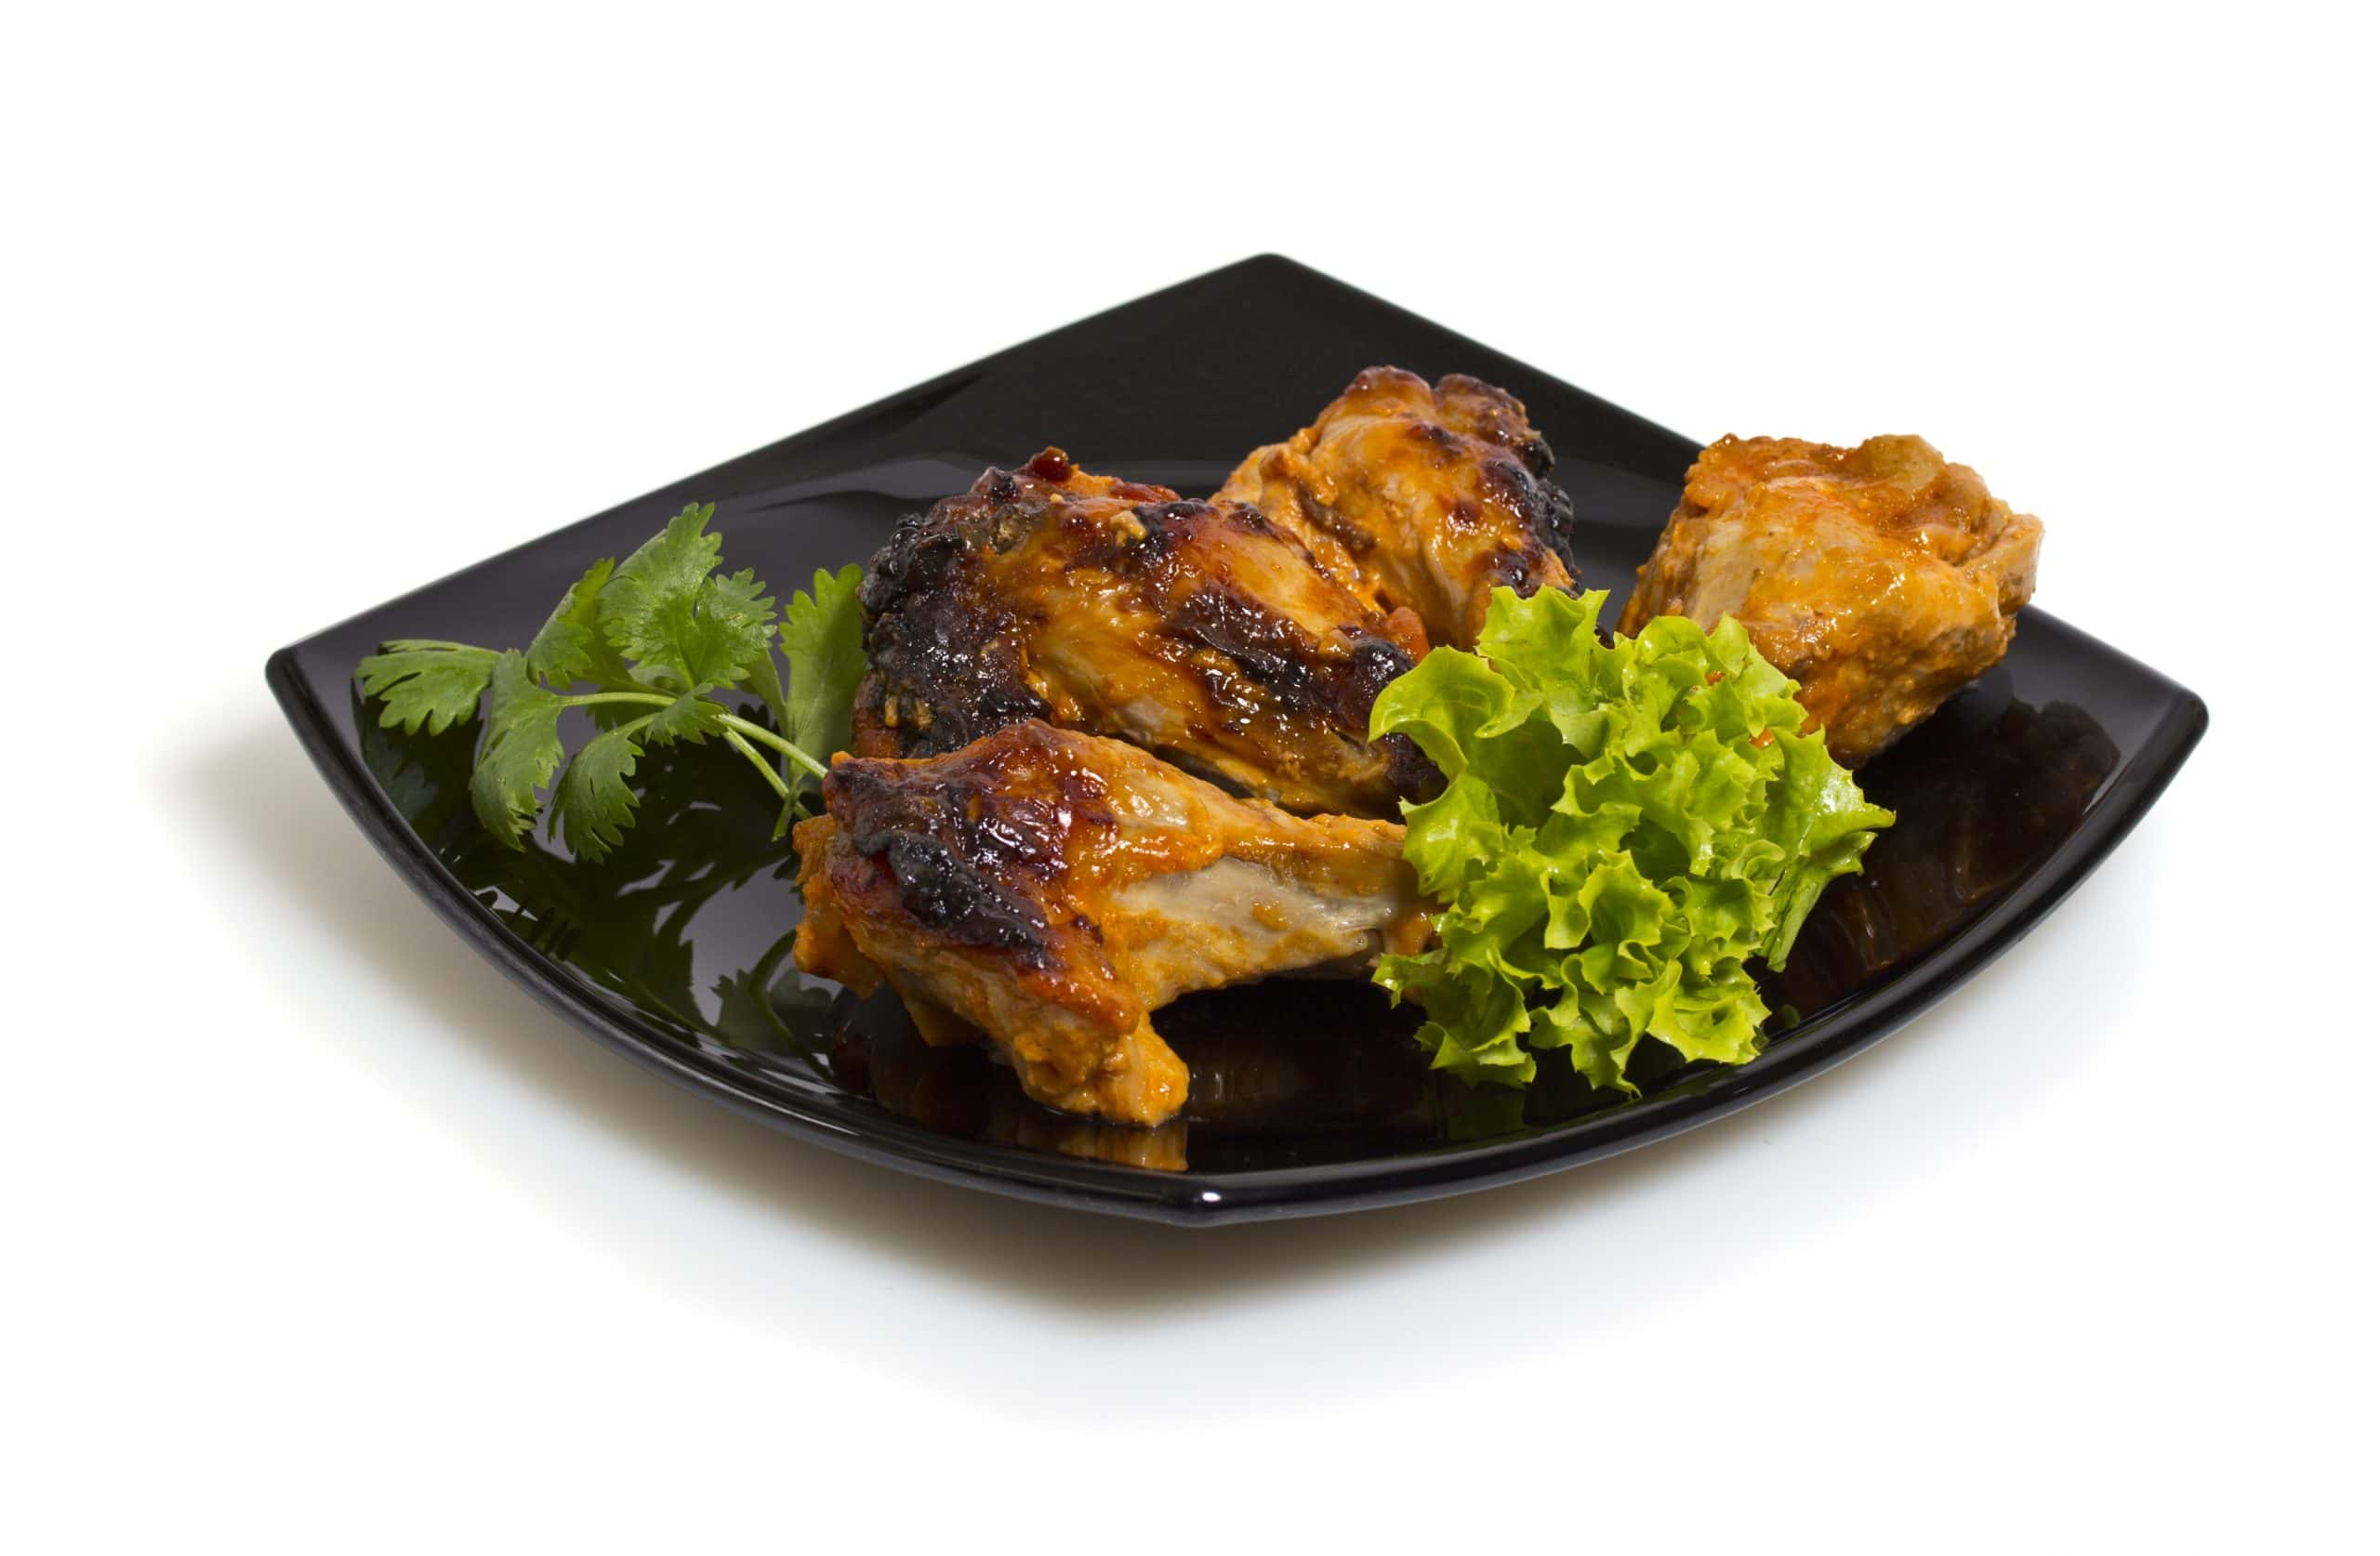 broiled chicken on black plate